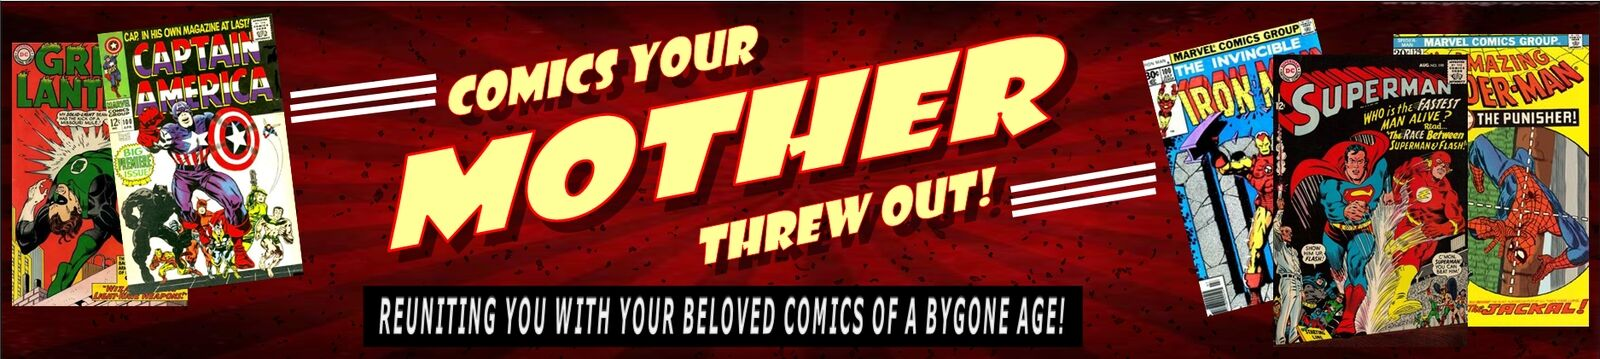 COMICS YOUR MOTHER THREW OUT